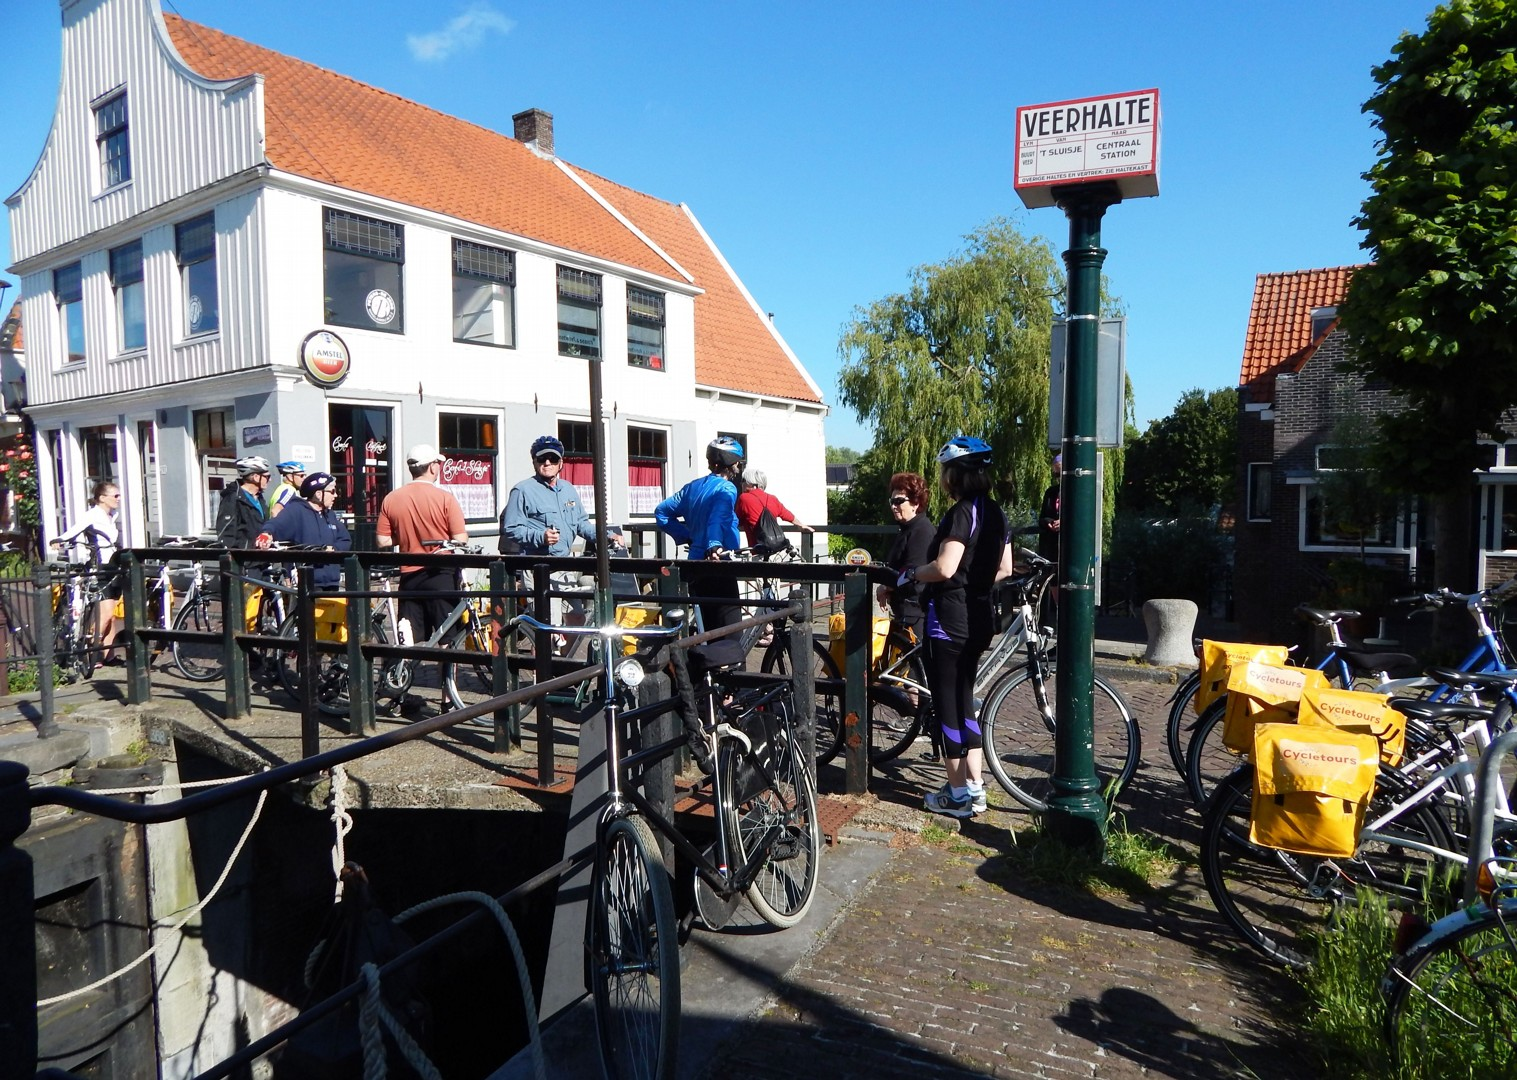 zwanenwater-cycling-holiday-in-holland-bike-and-barge-holiday.jpg - Holland - Windmills and Golden Beaches - Bike and Barge Holiday - Family Cycling